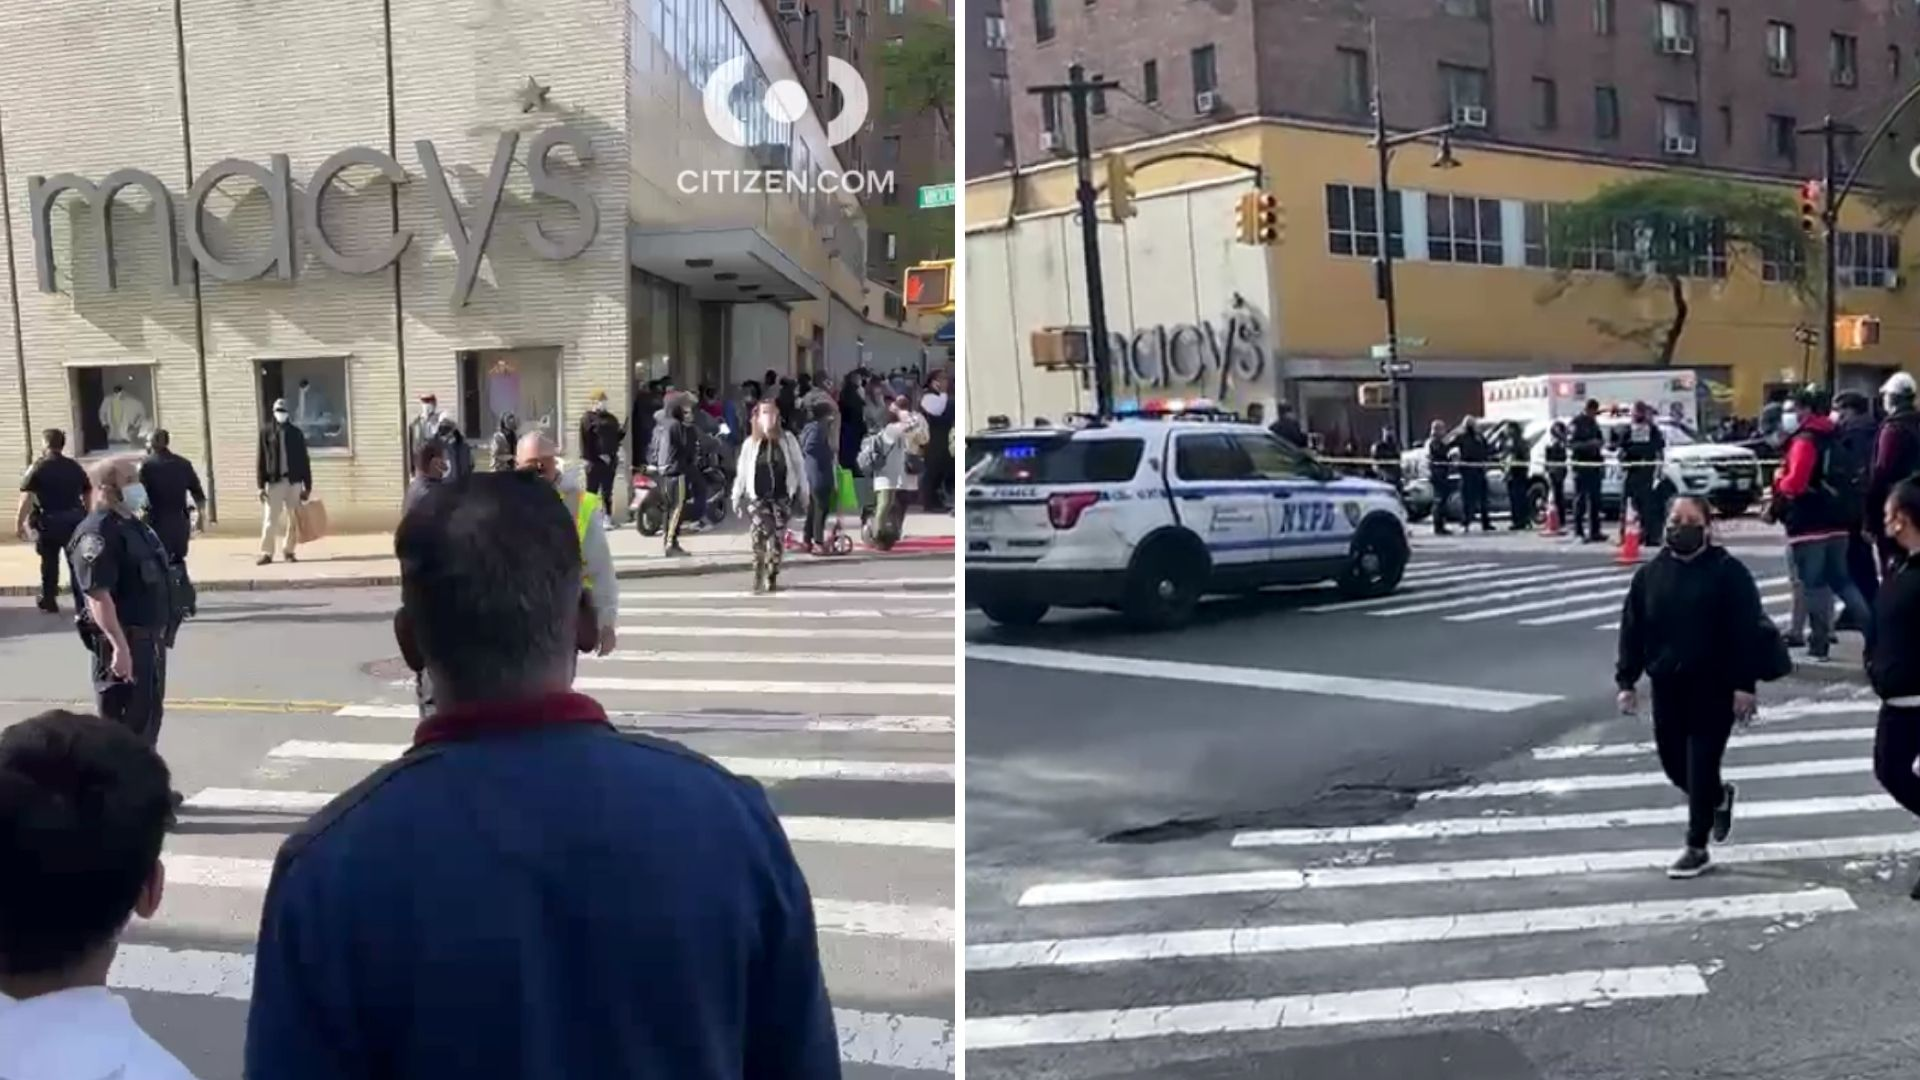 Bronx public safety officer shoots man with knife